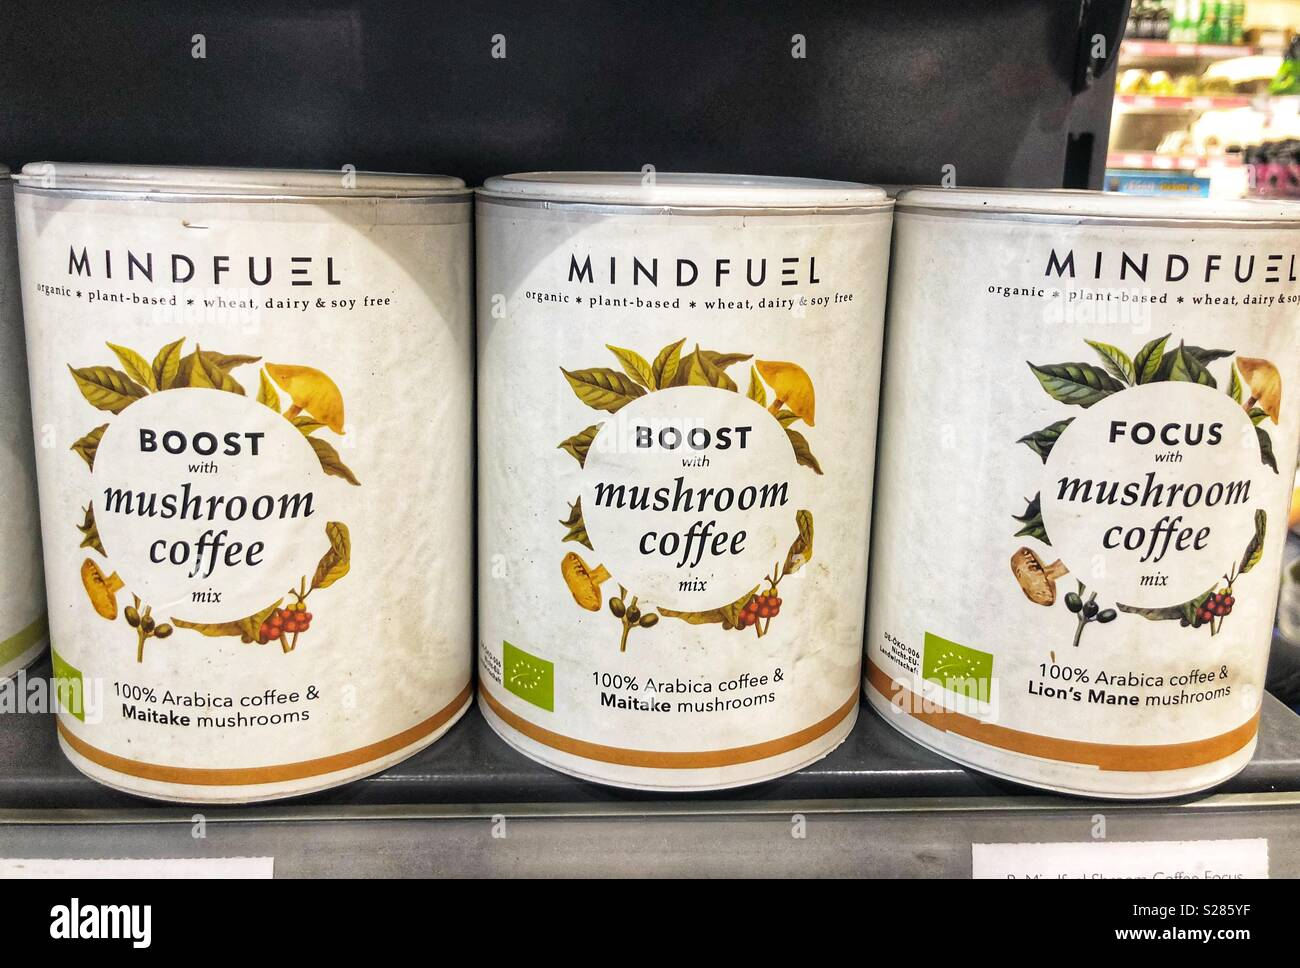 Mindfuel boost with mushroom coffee Stock Photo